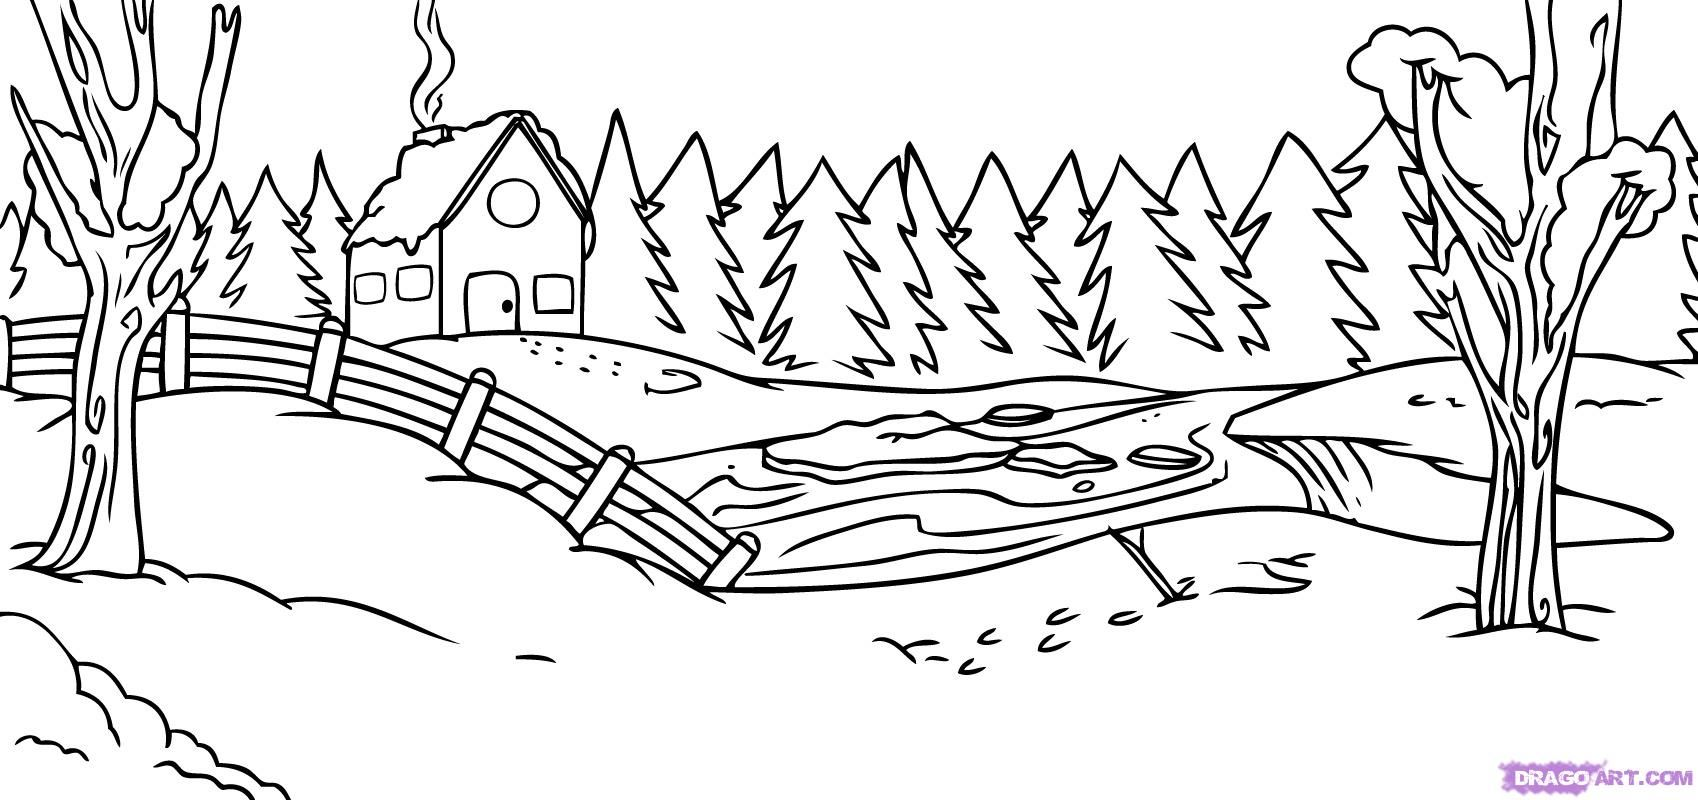 Winter Scene Template Coloring Pages Winter Free Coloring Pages Coloring Pages